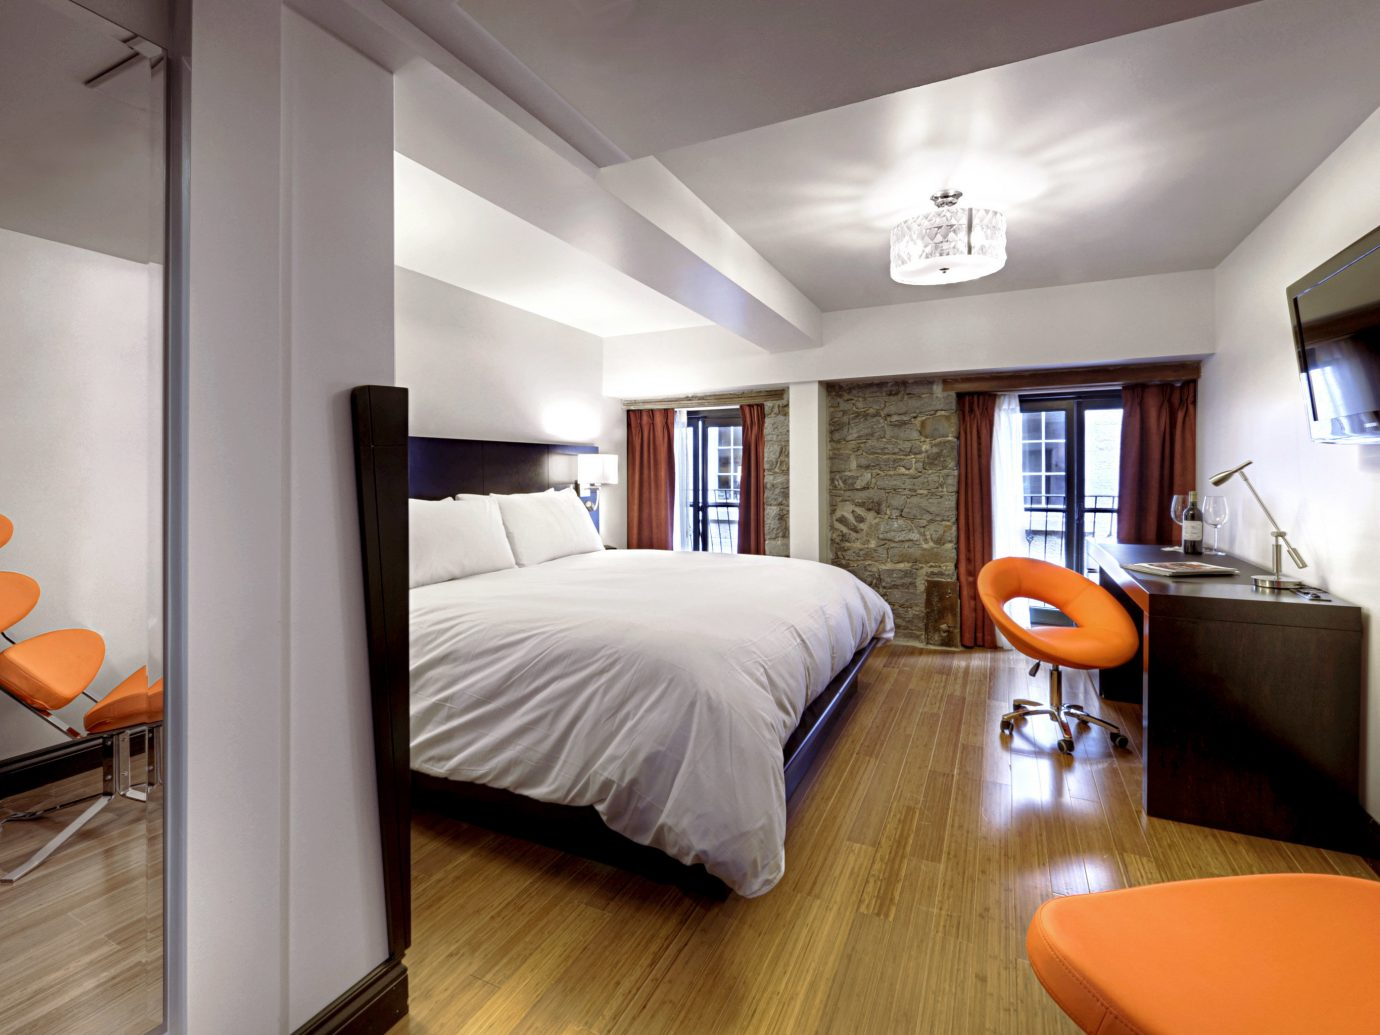 Bedroom Boutique Hotels Business Chicago Hotels Luxury Modern Scenic views Suite indoor floor wall ceiling room property bed real estate home estate interior design living room orange cottage wood condominium apartment furniture